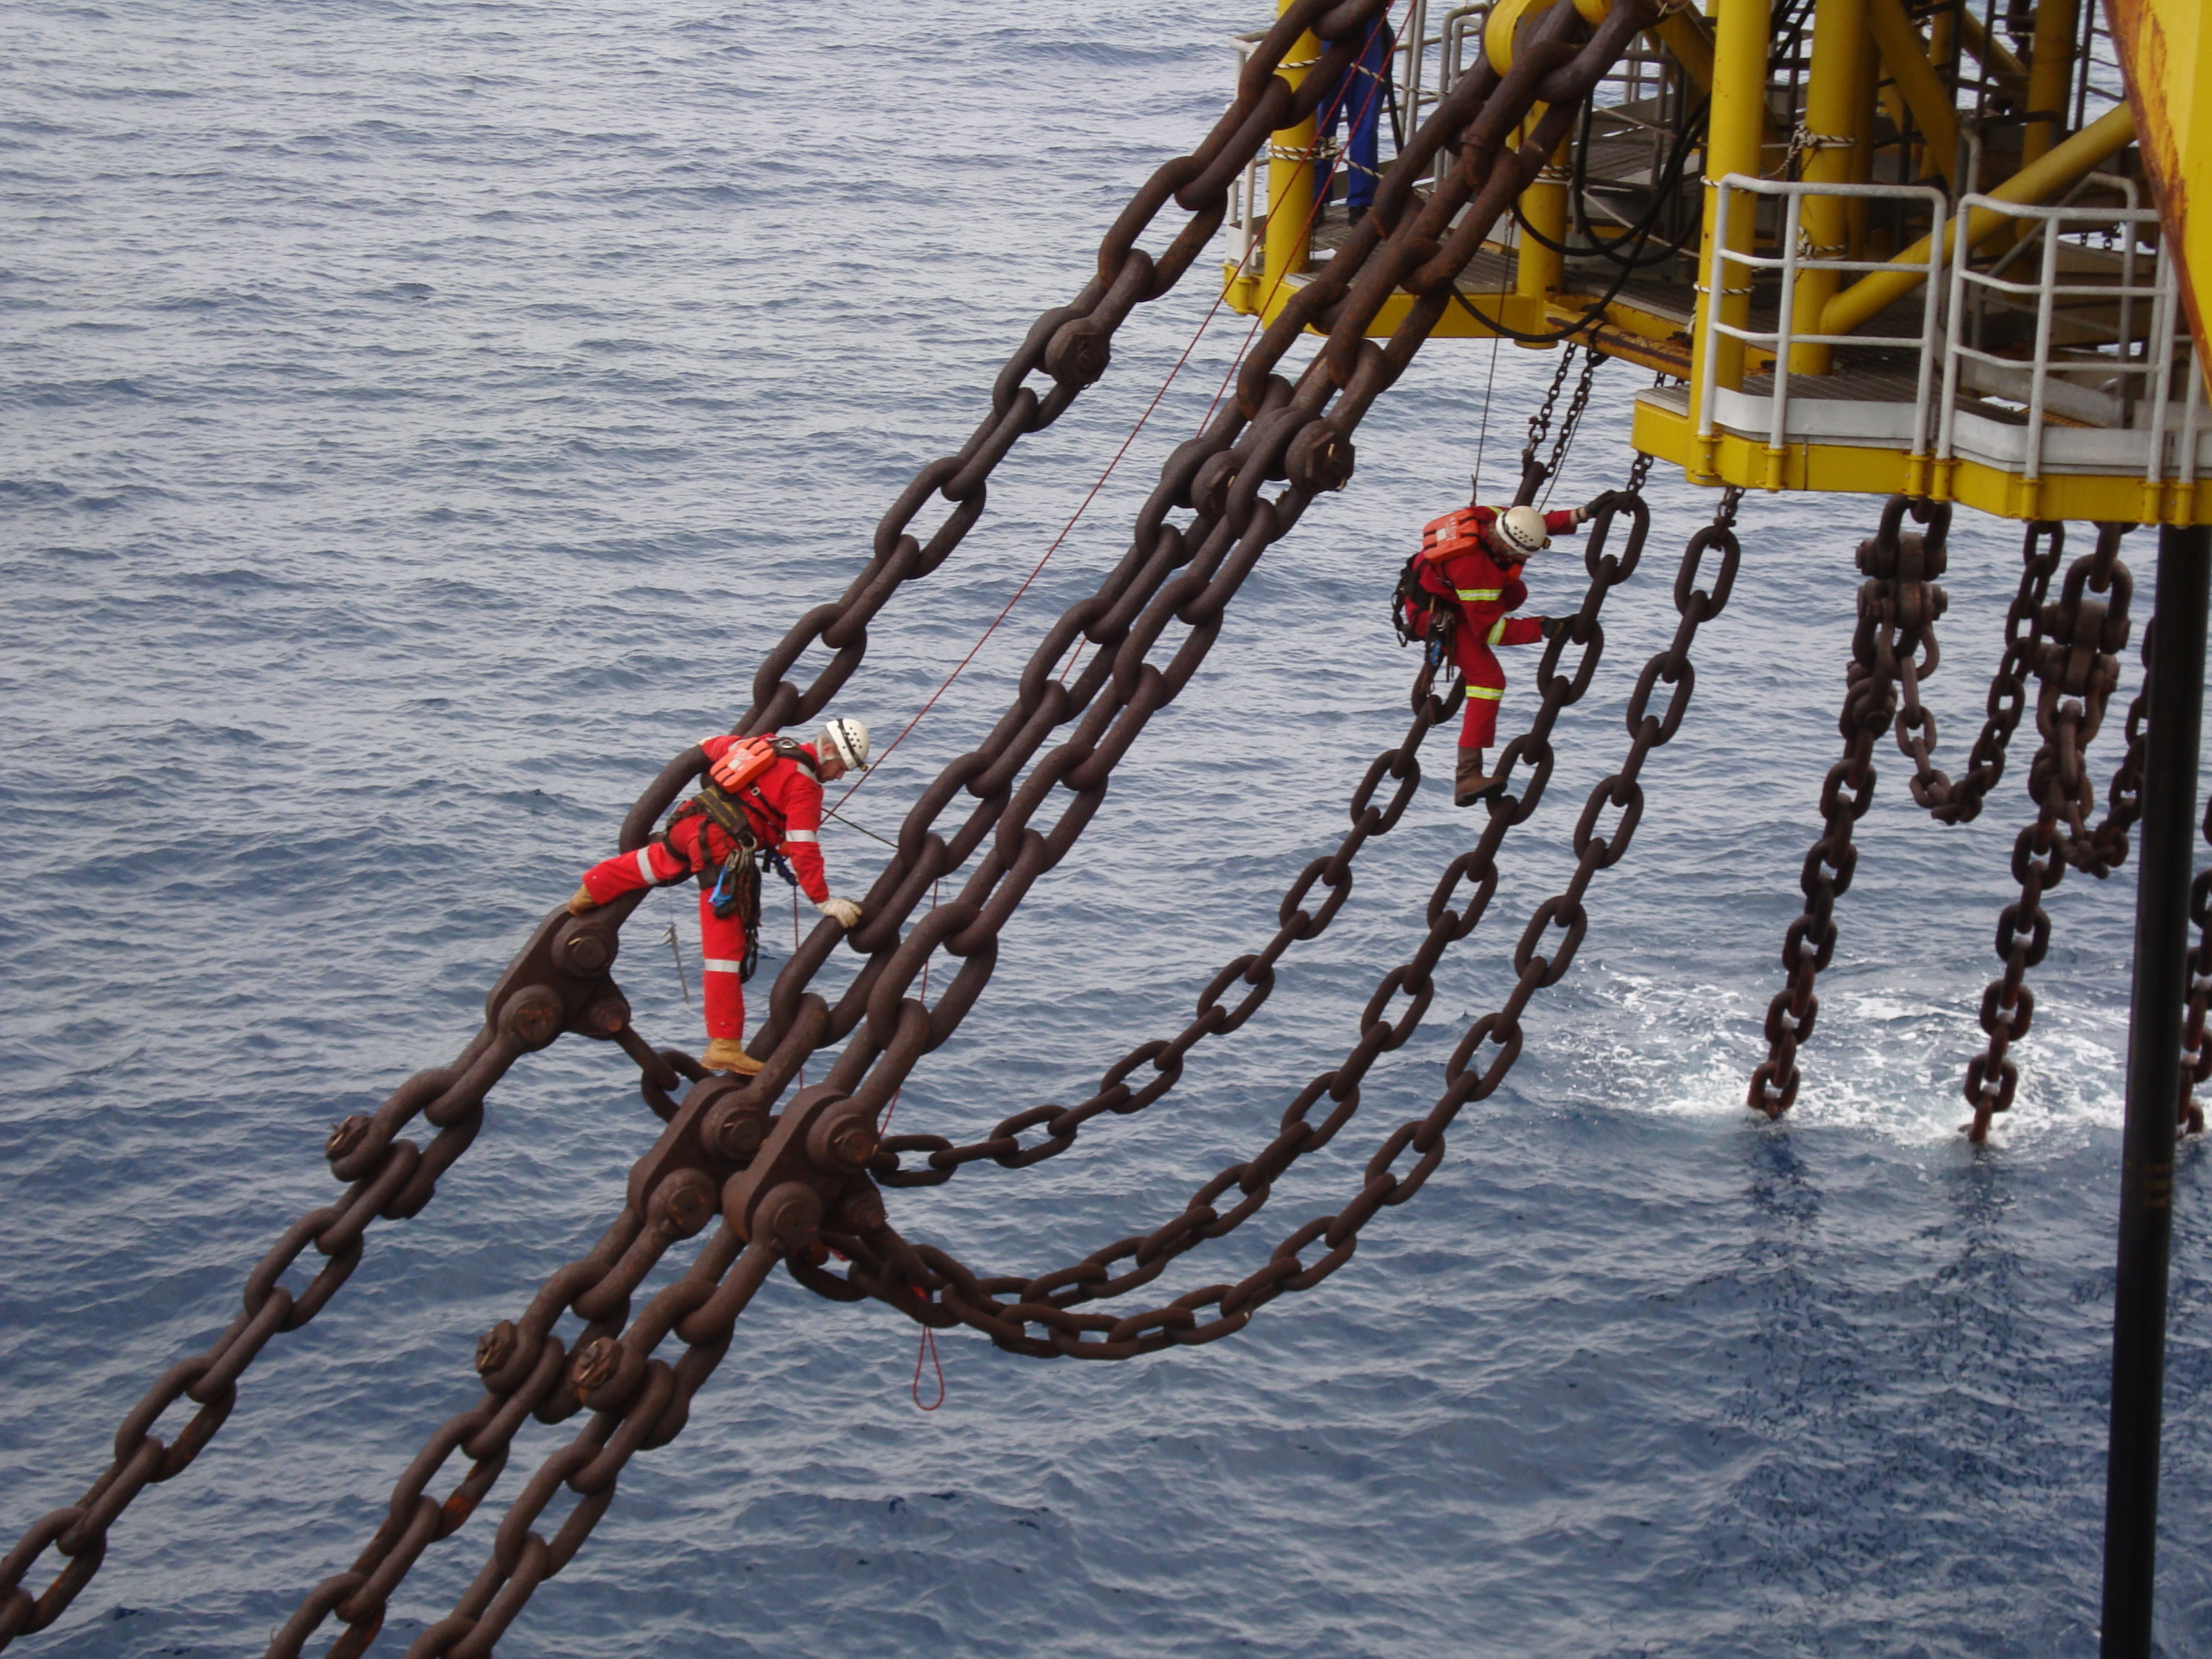 Rope Access Techniques - Altrad Group